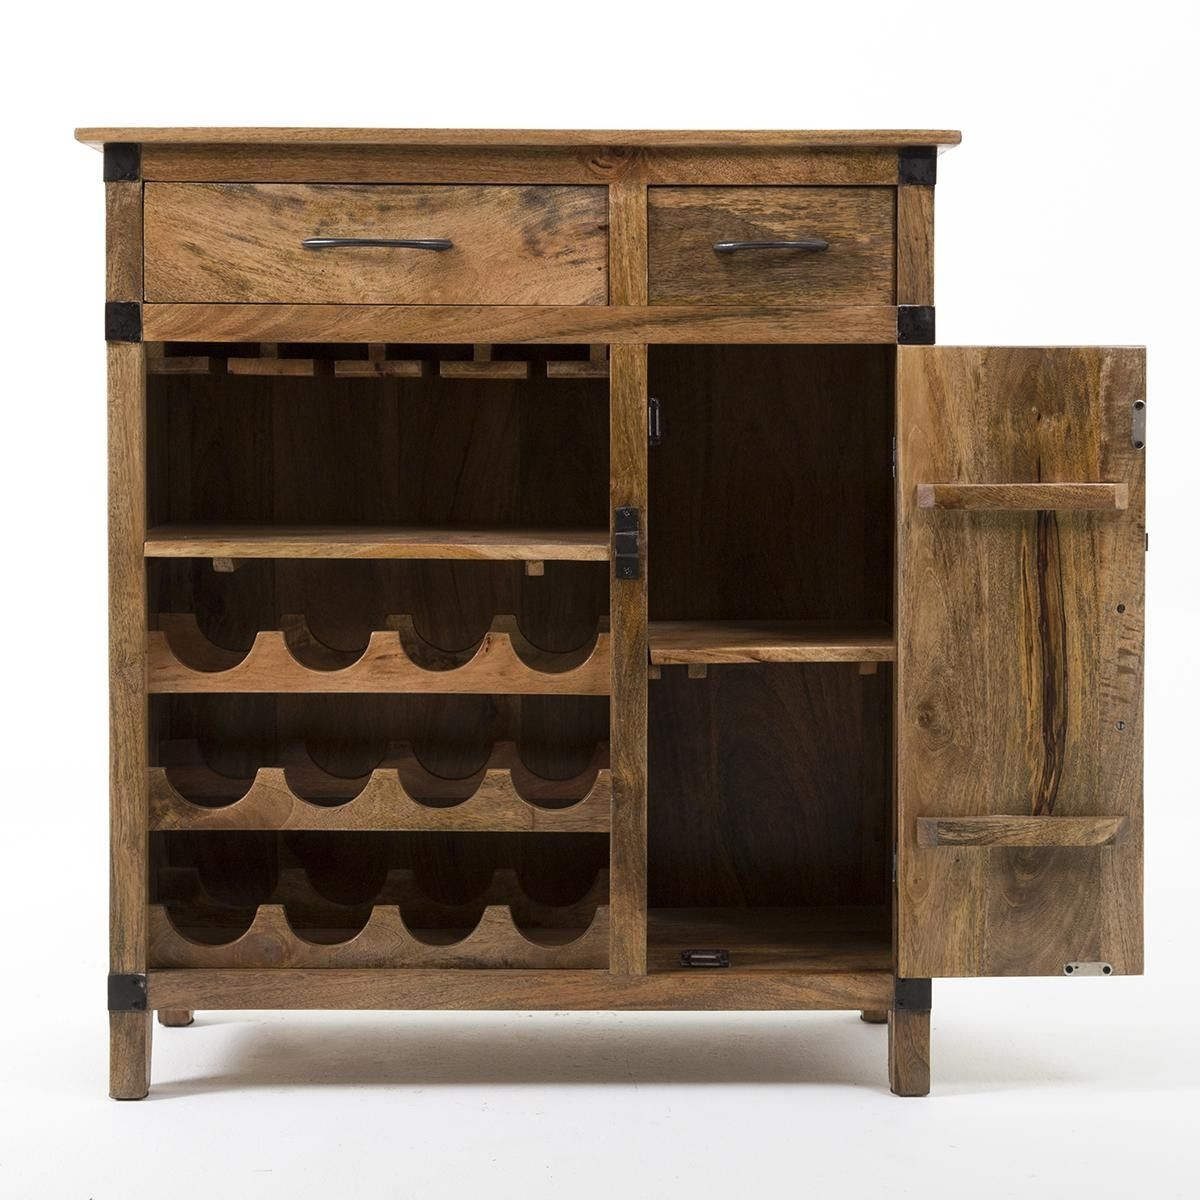 Rustic Industrial Wine Cabinet | Our home | Pinterest | Wine ...